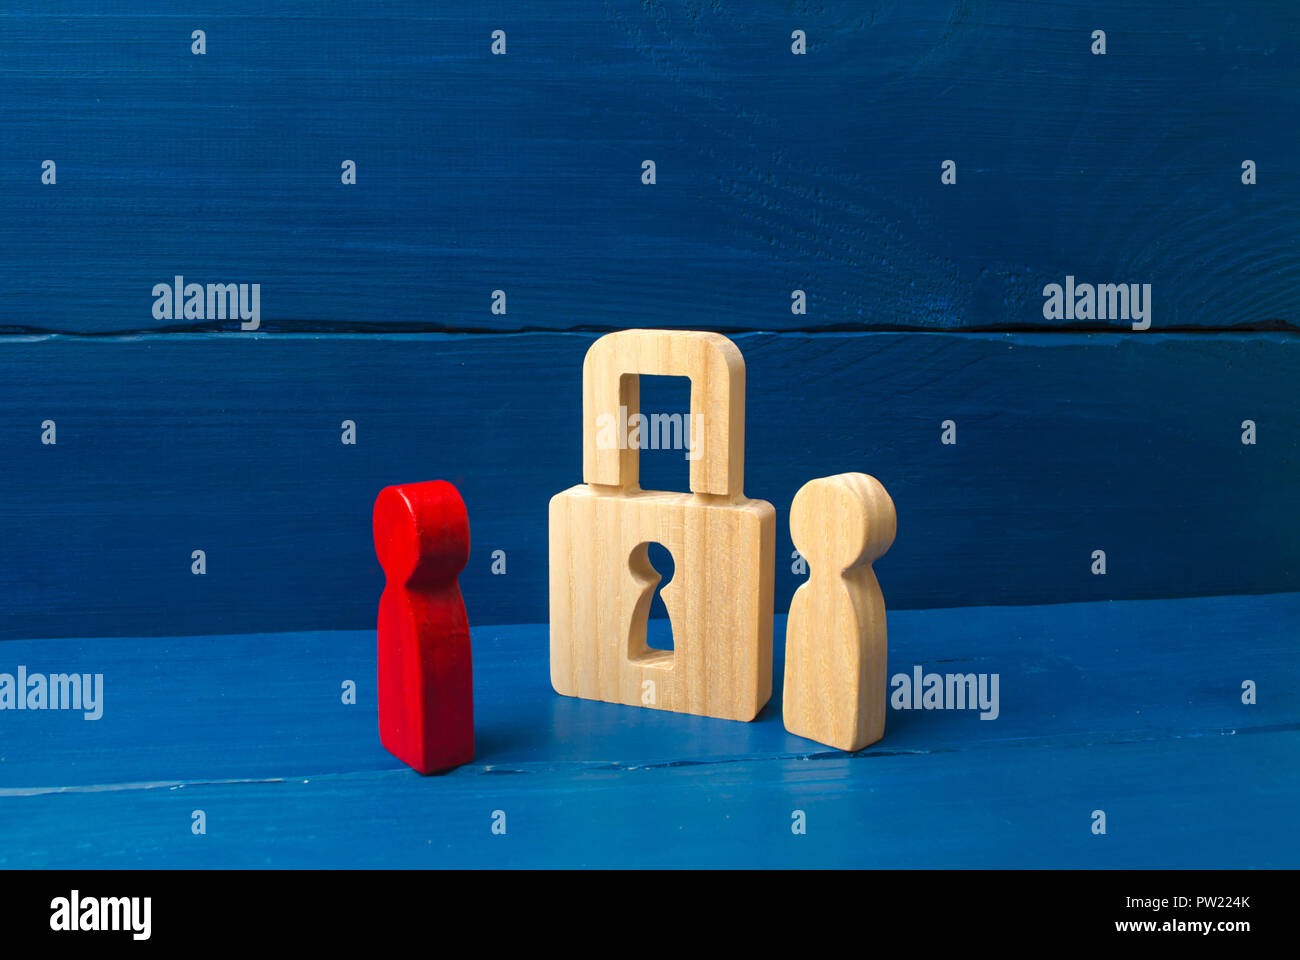 The person stands near the padlock and protects him from the red person. concept of the preservation of secrets, information and values. Protection of - Stock Image